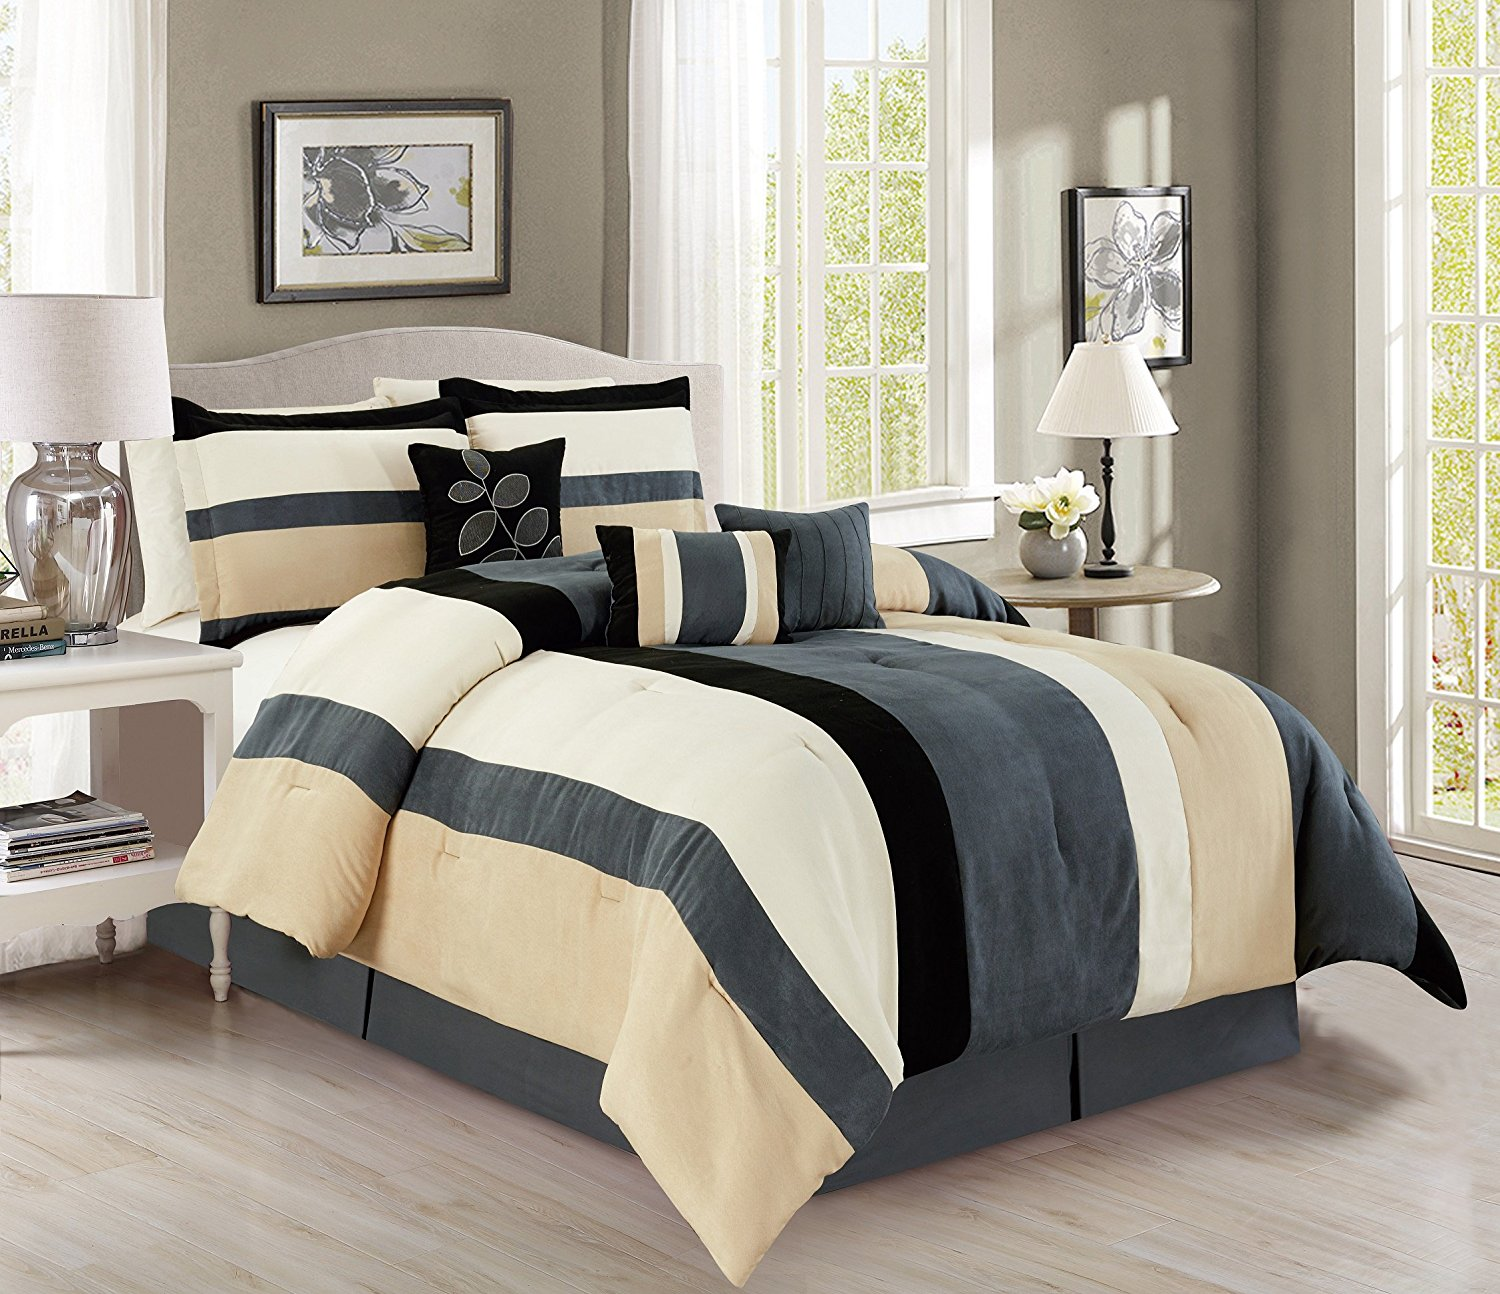 Buy Elegant 7 Piece Micro Suede Stripe California Cal King Bedding Grey Black Beige Comforter Set With Accent Pillows In Cheap Price On Alibaba Com